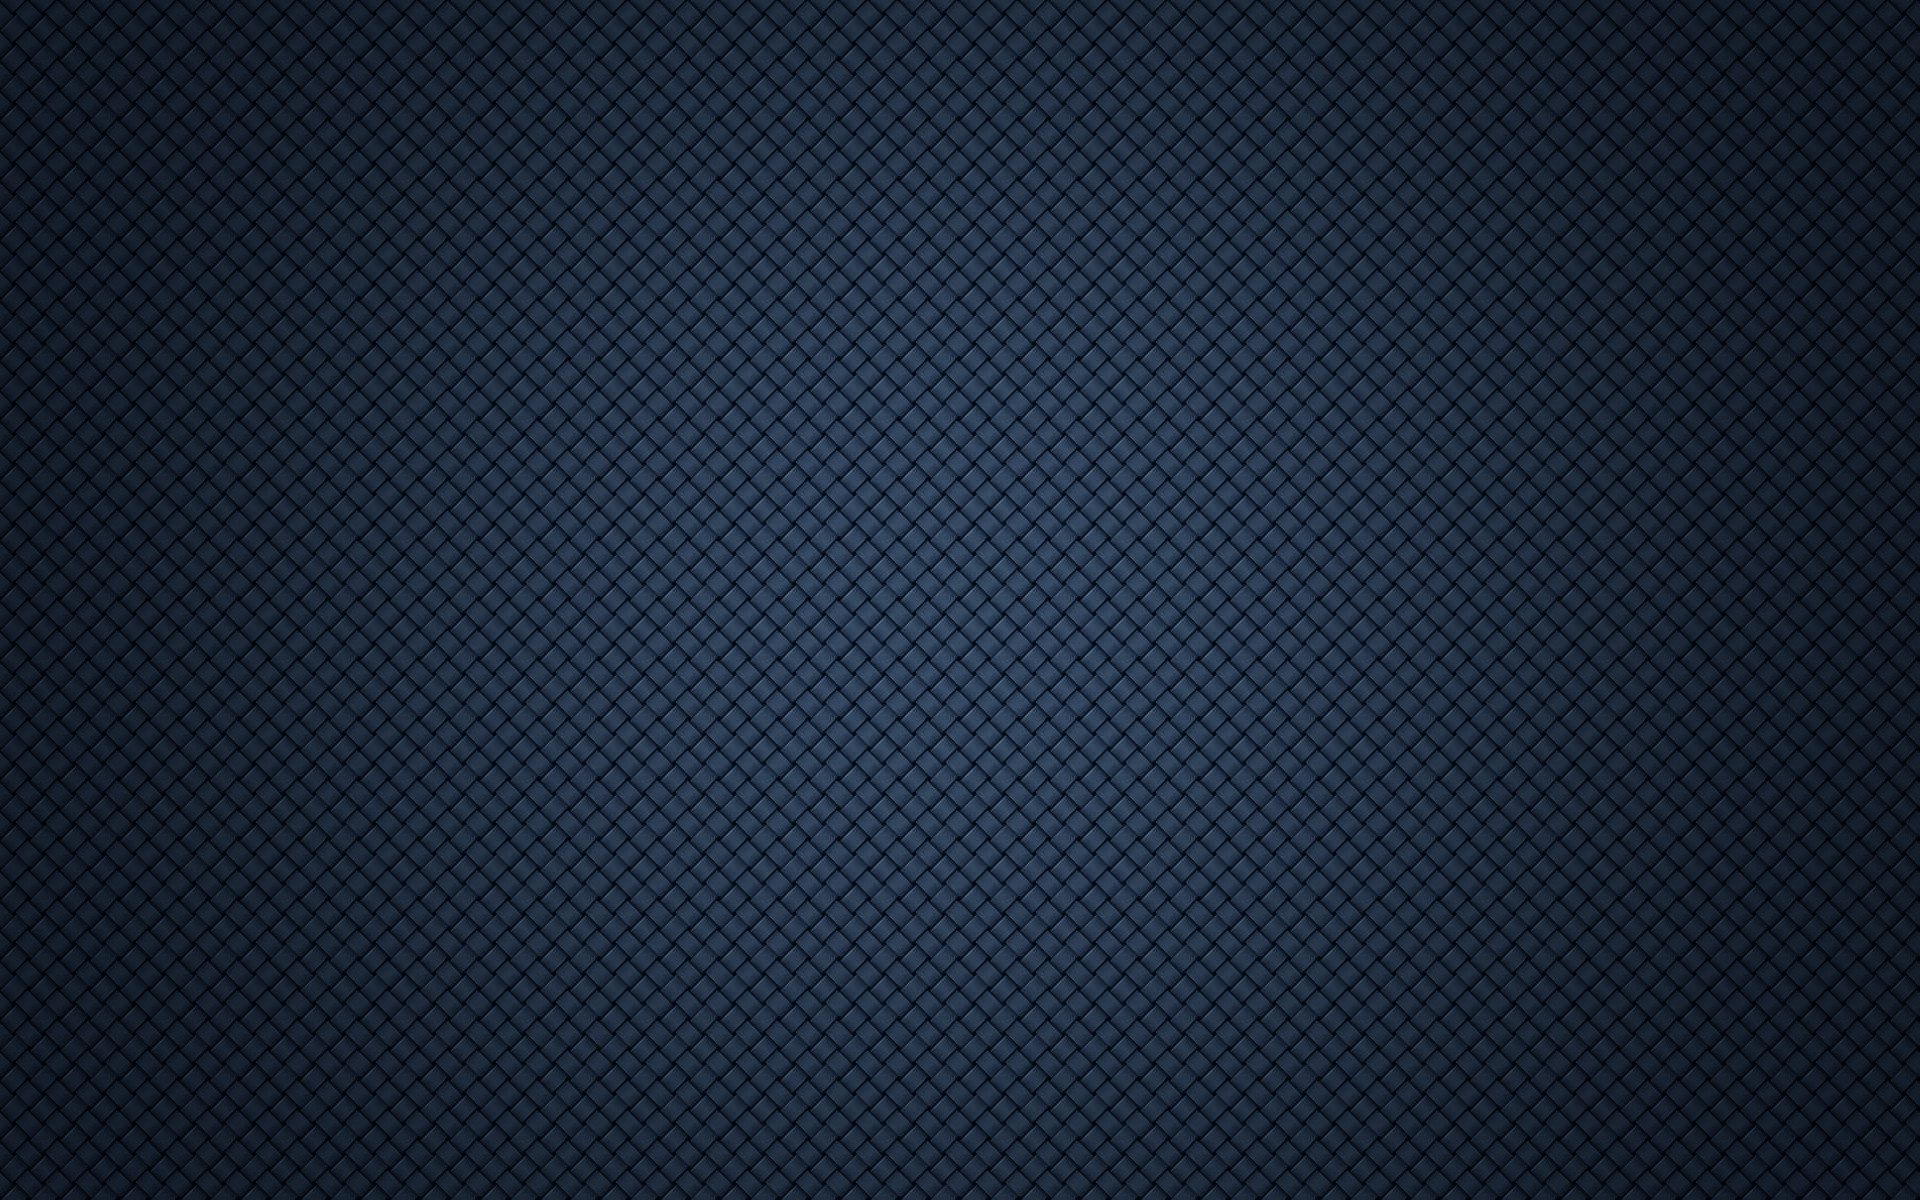 blue-wallpaper-background-texture-checkbox.jpg